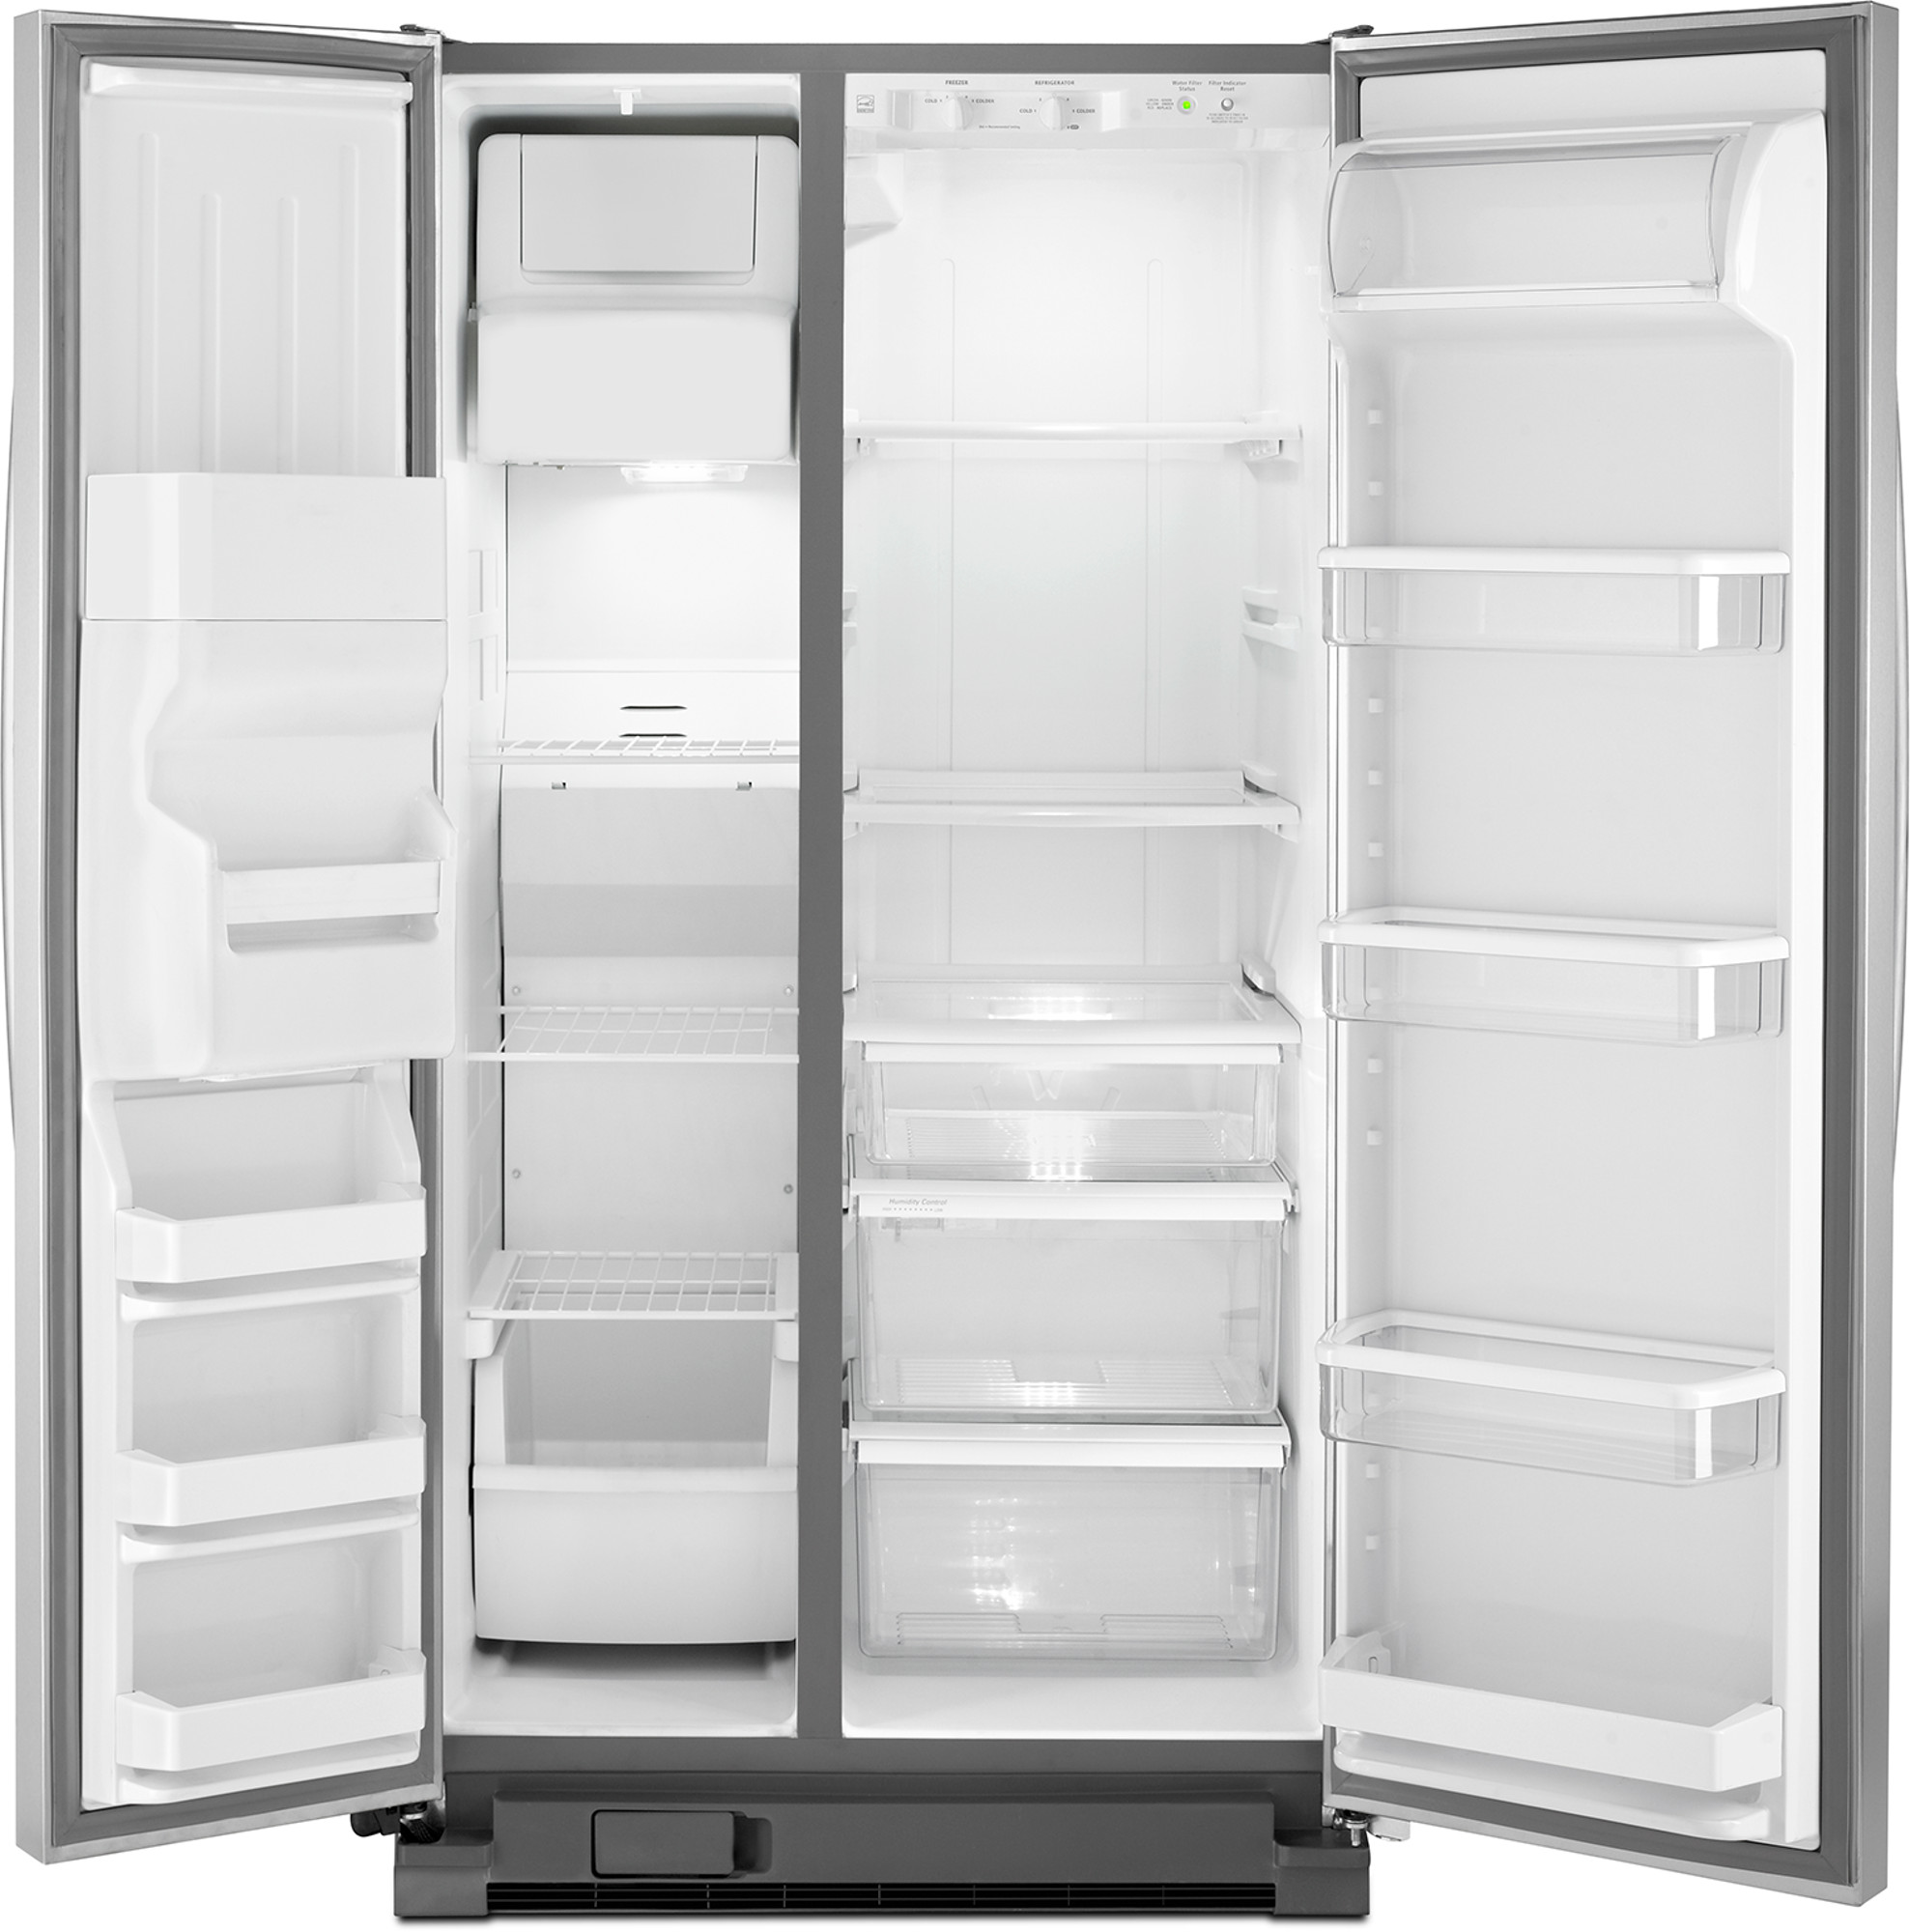 Whirlpool WRS335FDDM 25 cu. ft. Side-by-Side Refrigerator w/ Ice/Water Dispenser - Stainless Steel